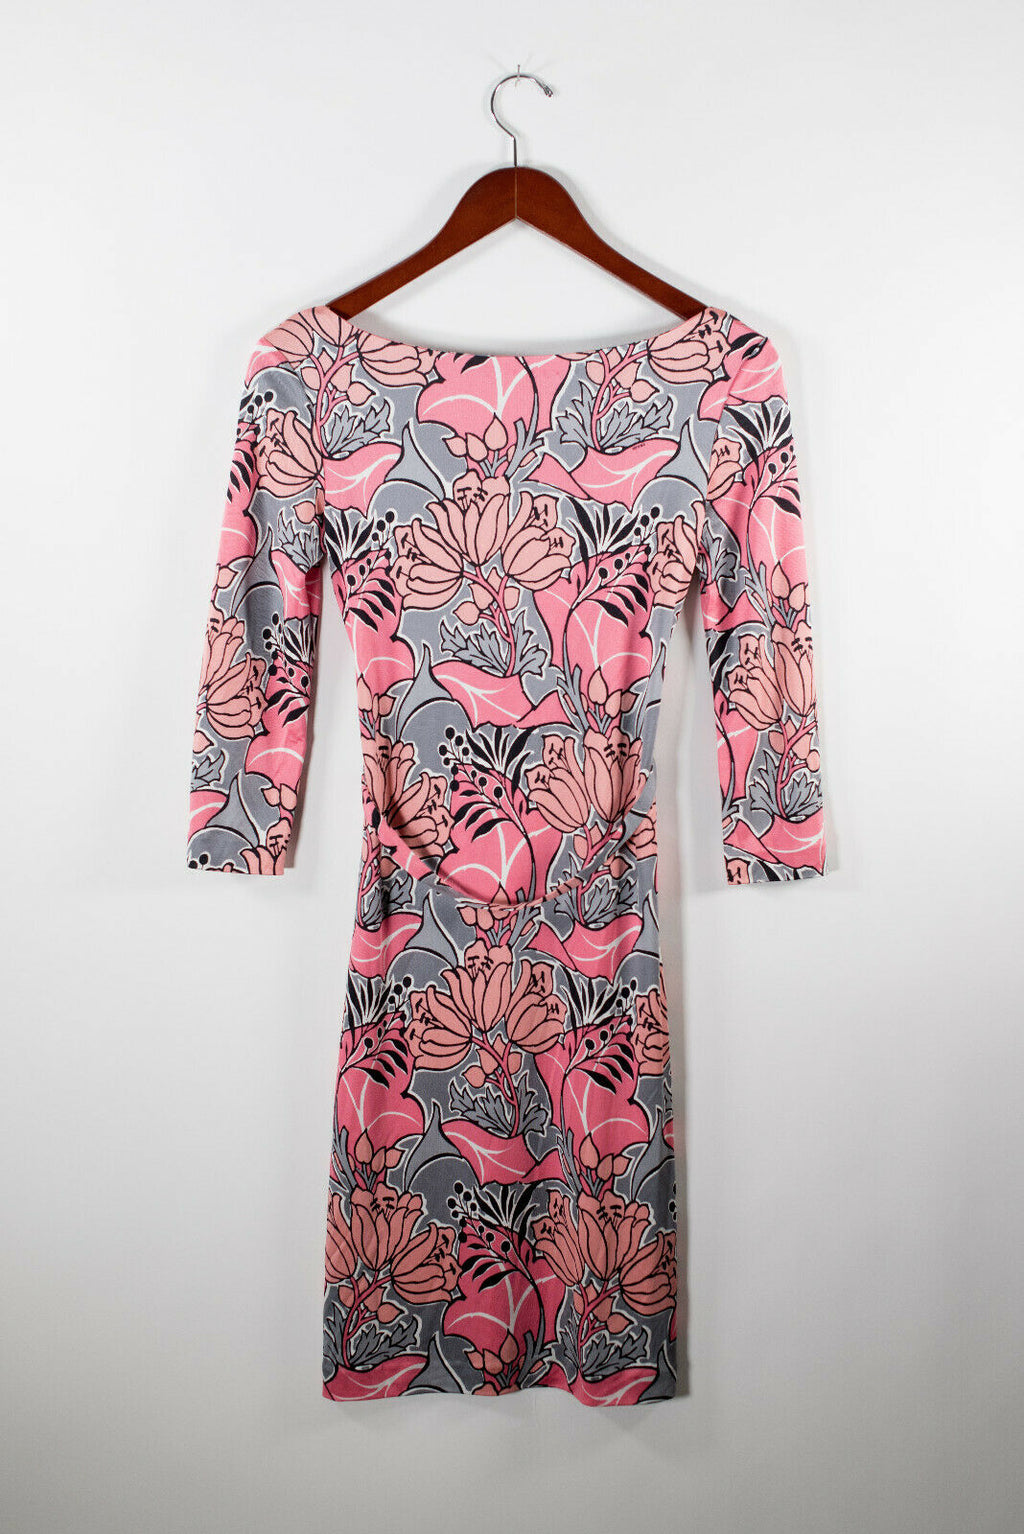 Prada x Holliday & Brown Small Pink Floral Belted Dress